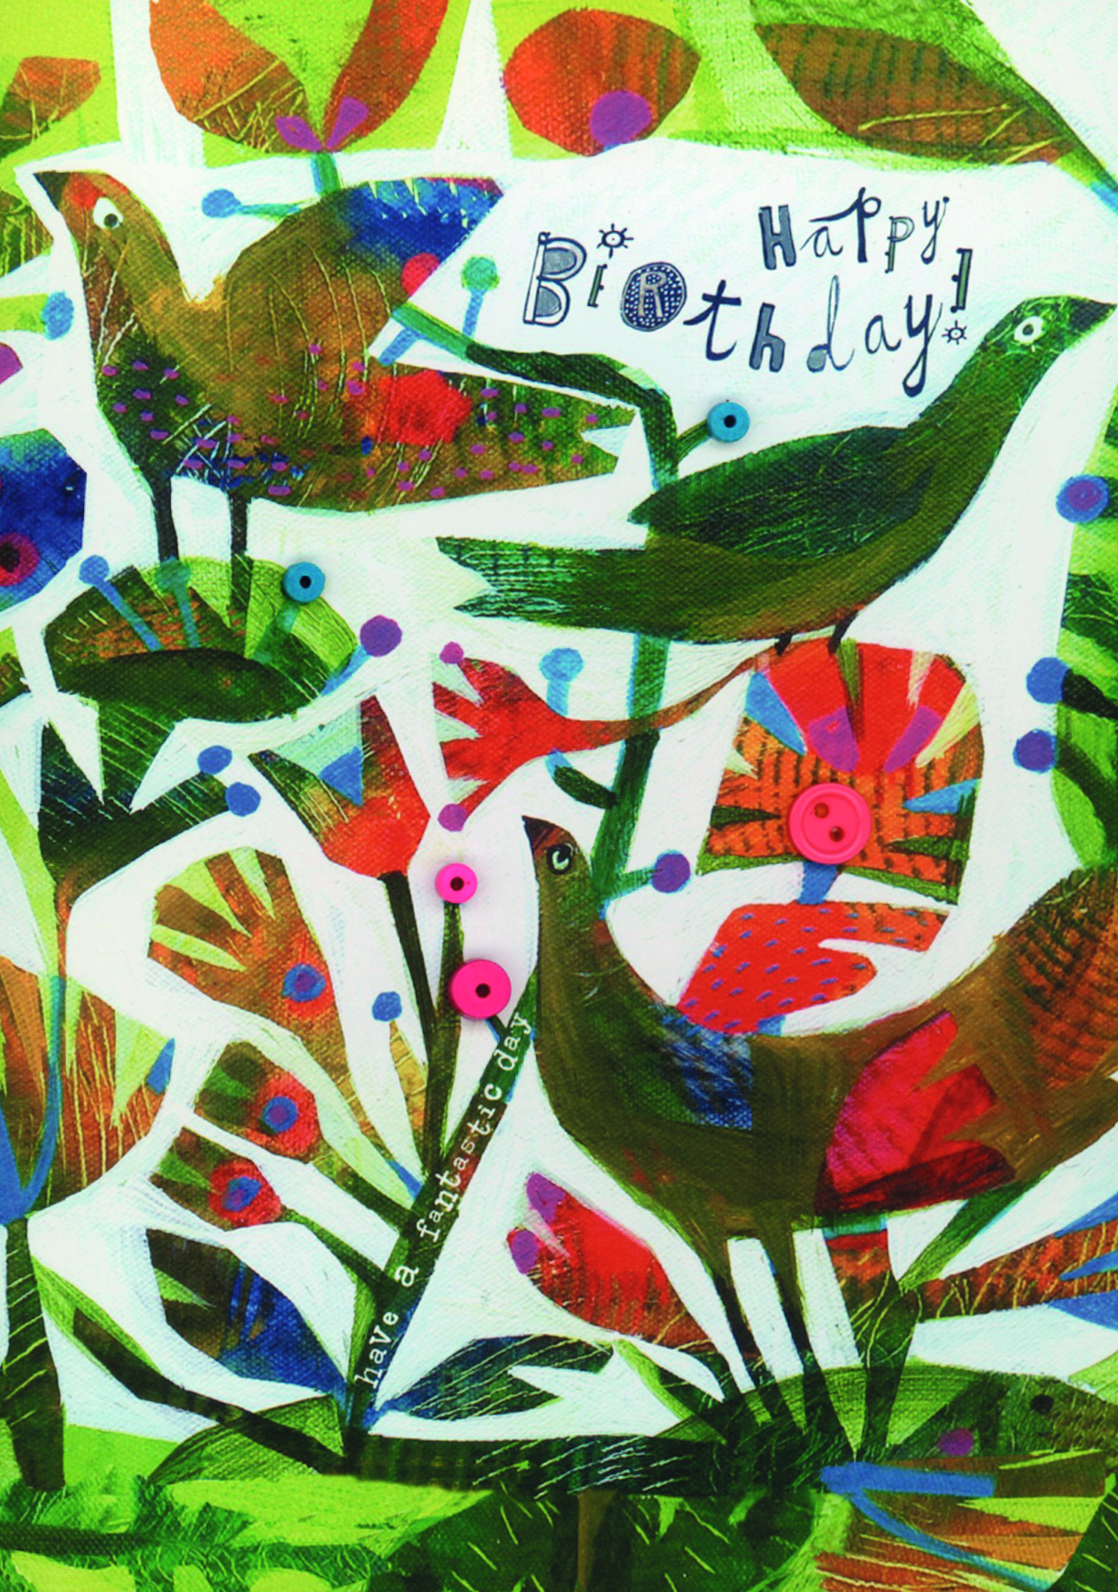 Above: Artist Este Macleod has been influenced by folk art styles. Her work is published by Cinnamon Aitch.